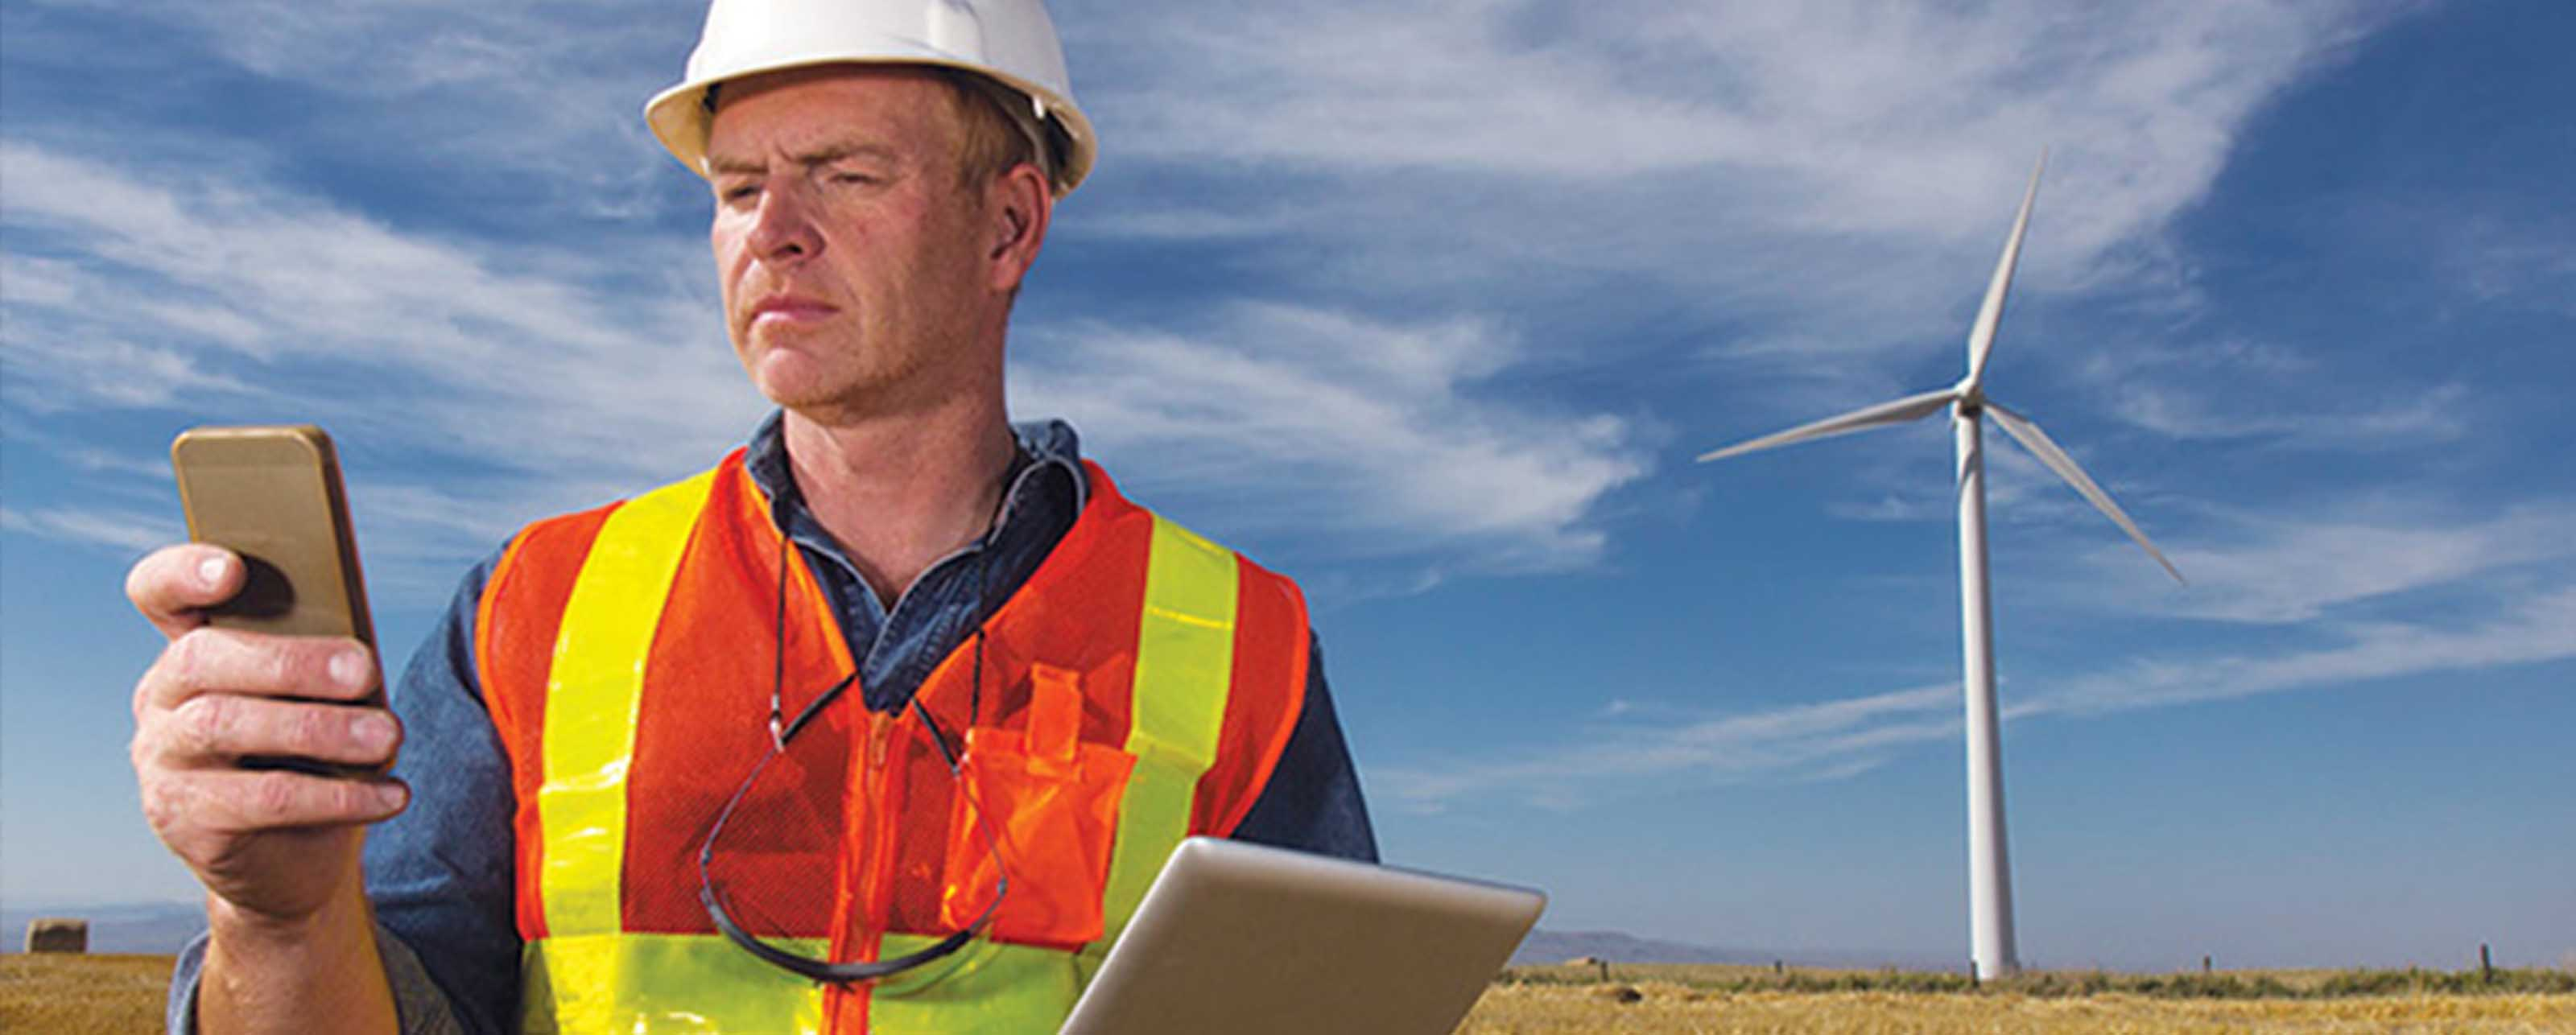 Utility engineer using GE Digital remote operations software for grid optimization